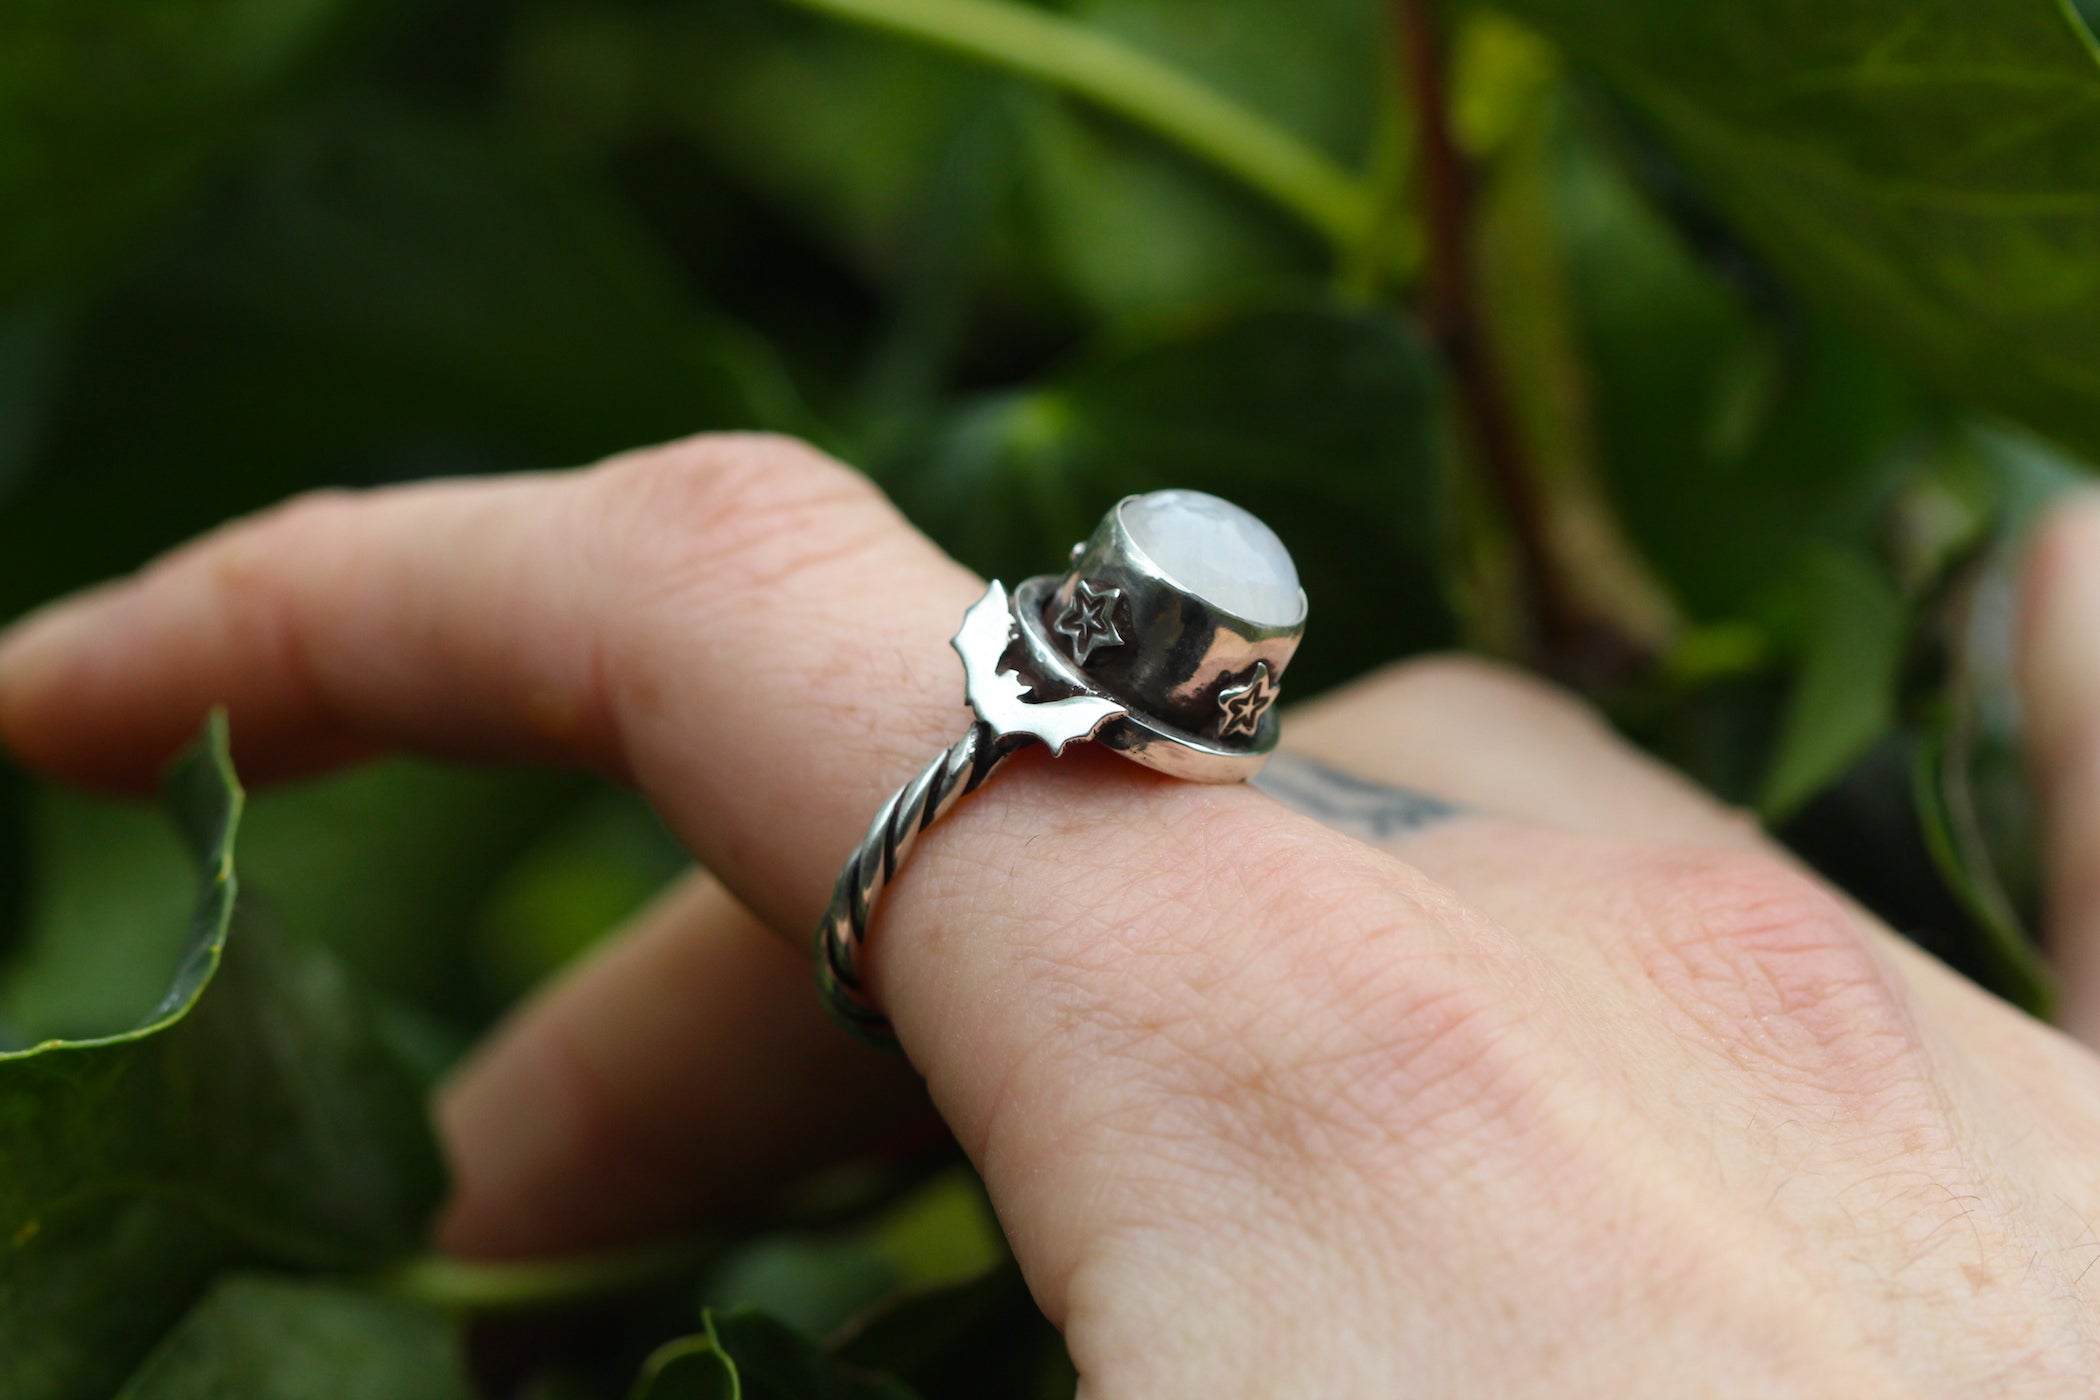 SAMHAIN BLUE MOON Handmade Sterling Silver Ring with Rainbow Moonstone - Size O/7